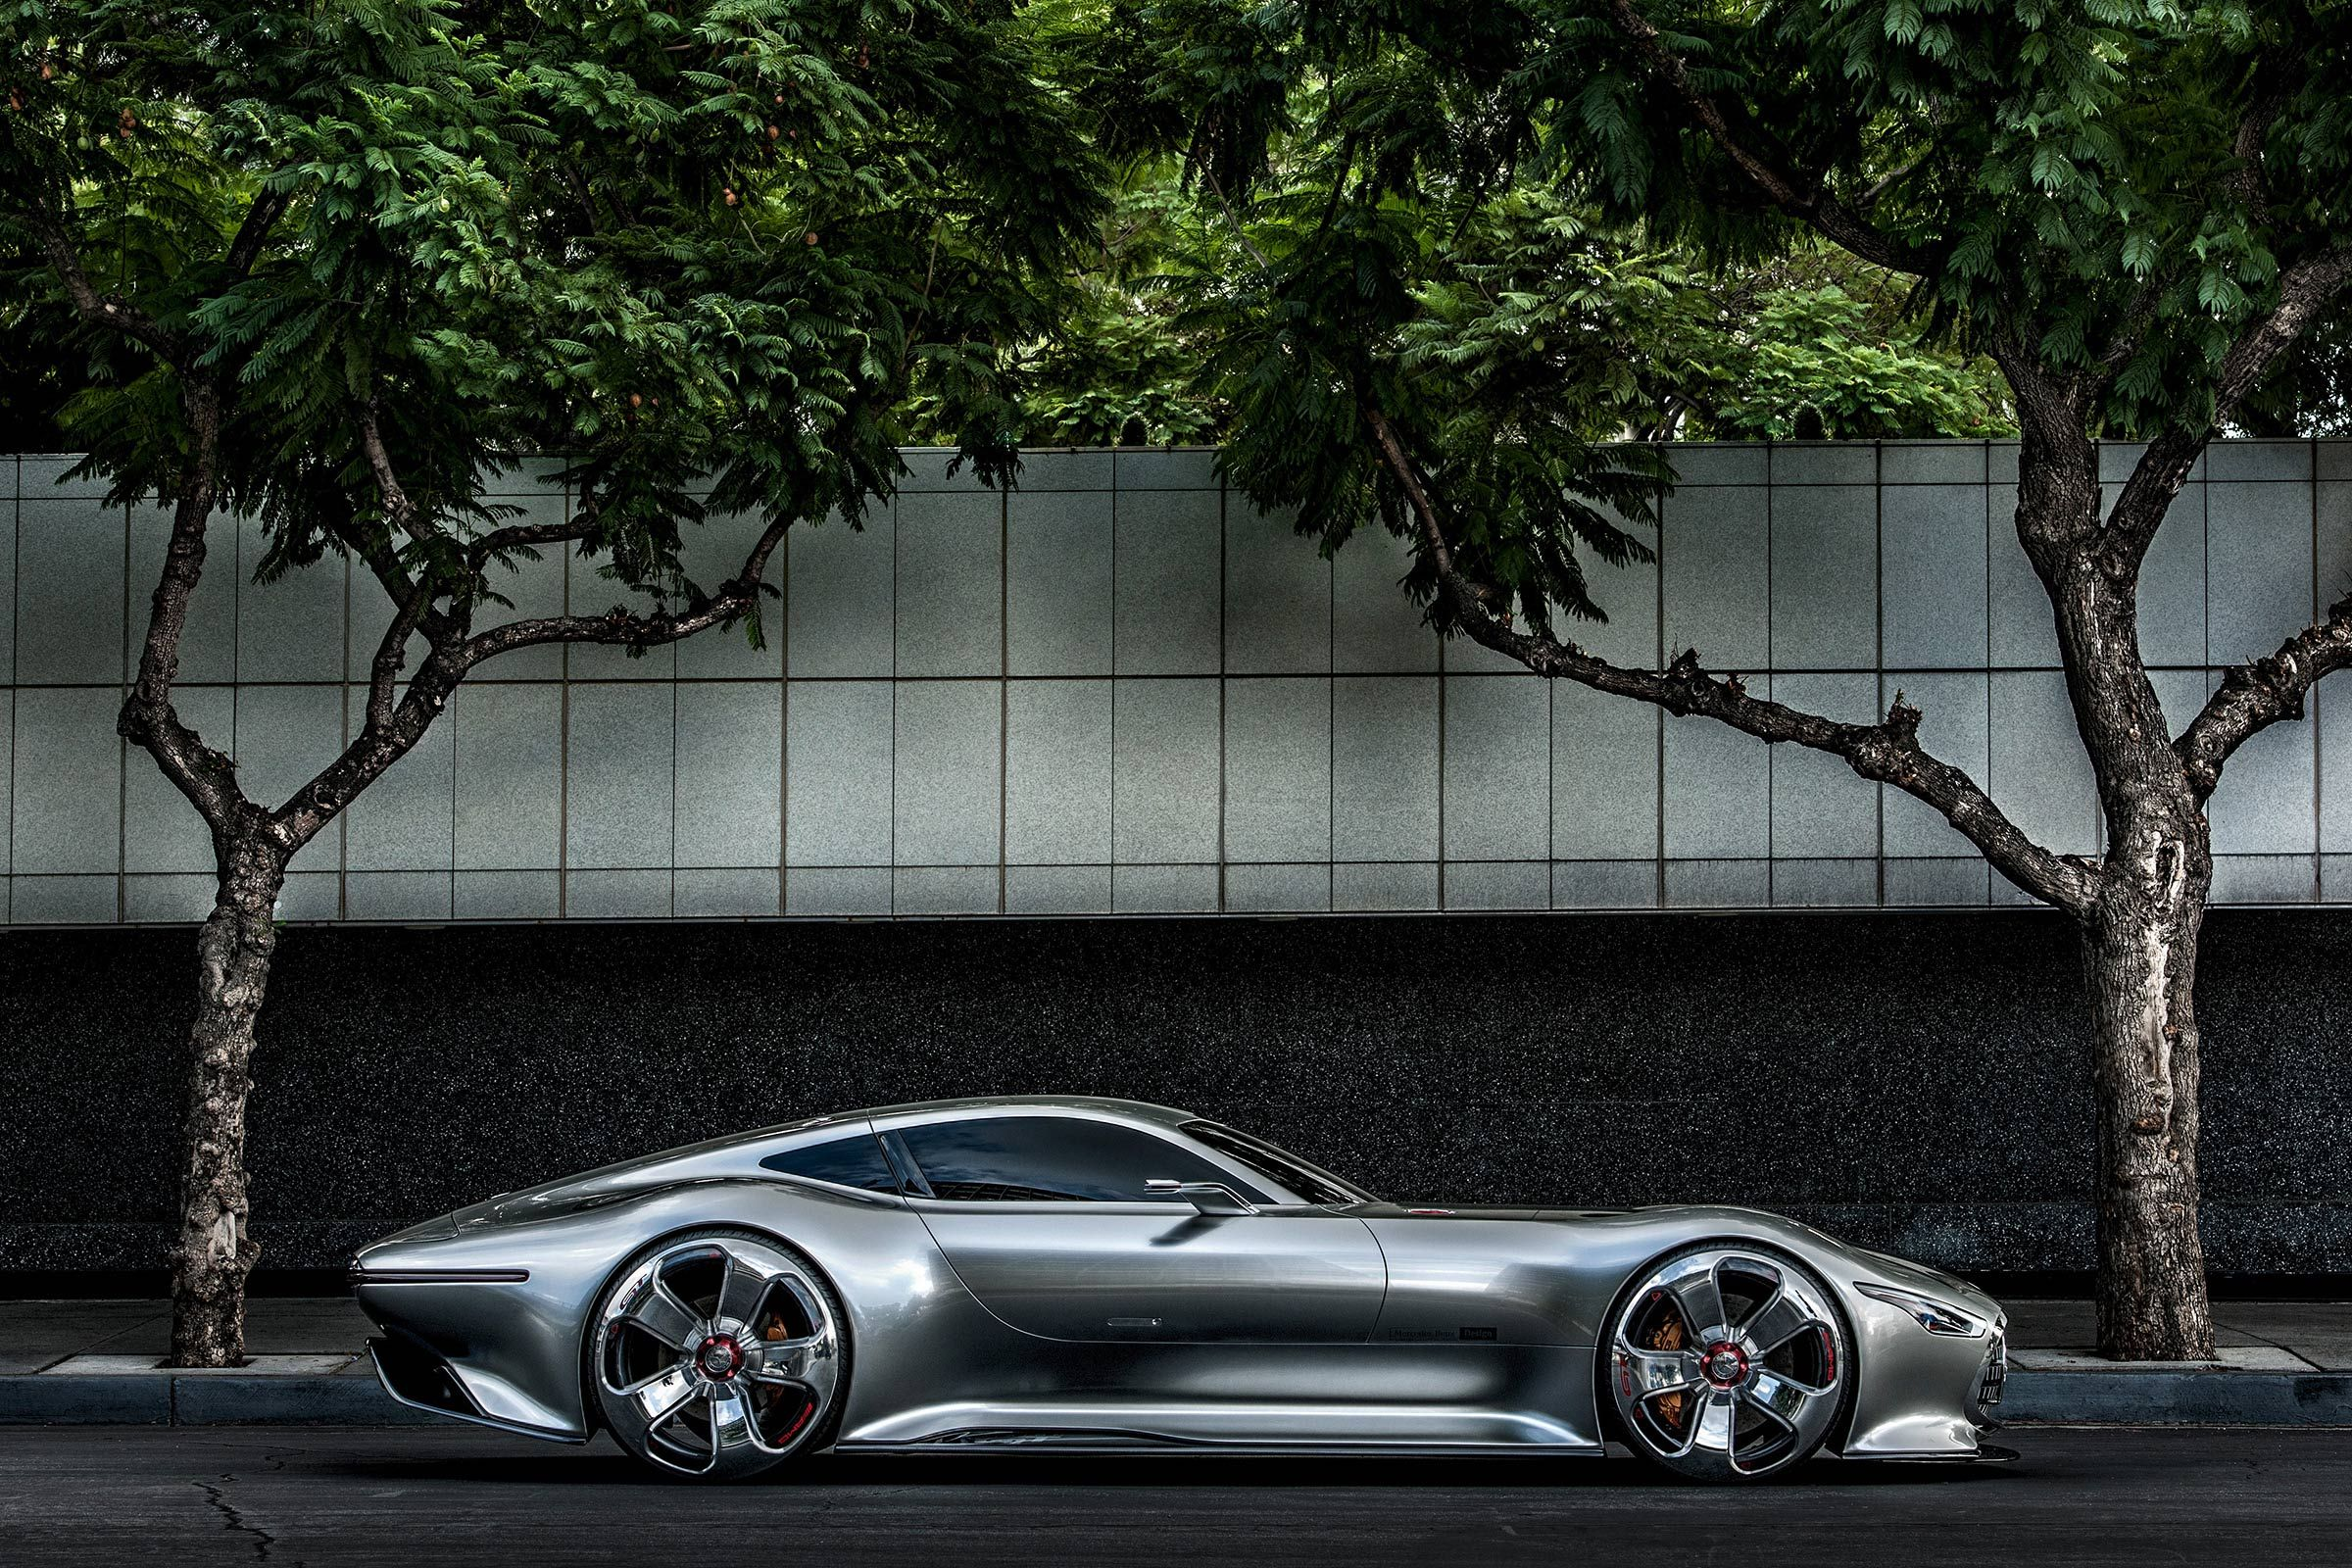 Mercedes benz amg vision gran turismo concept comes from the best future photo gallery of auto shows from car and driver car images